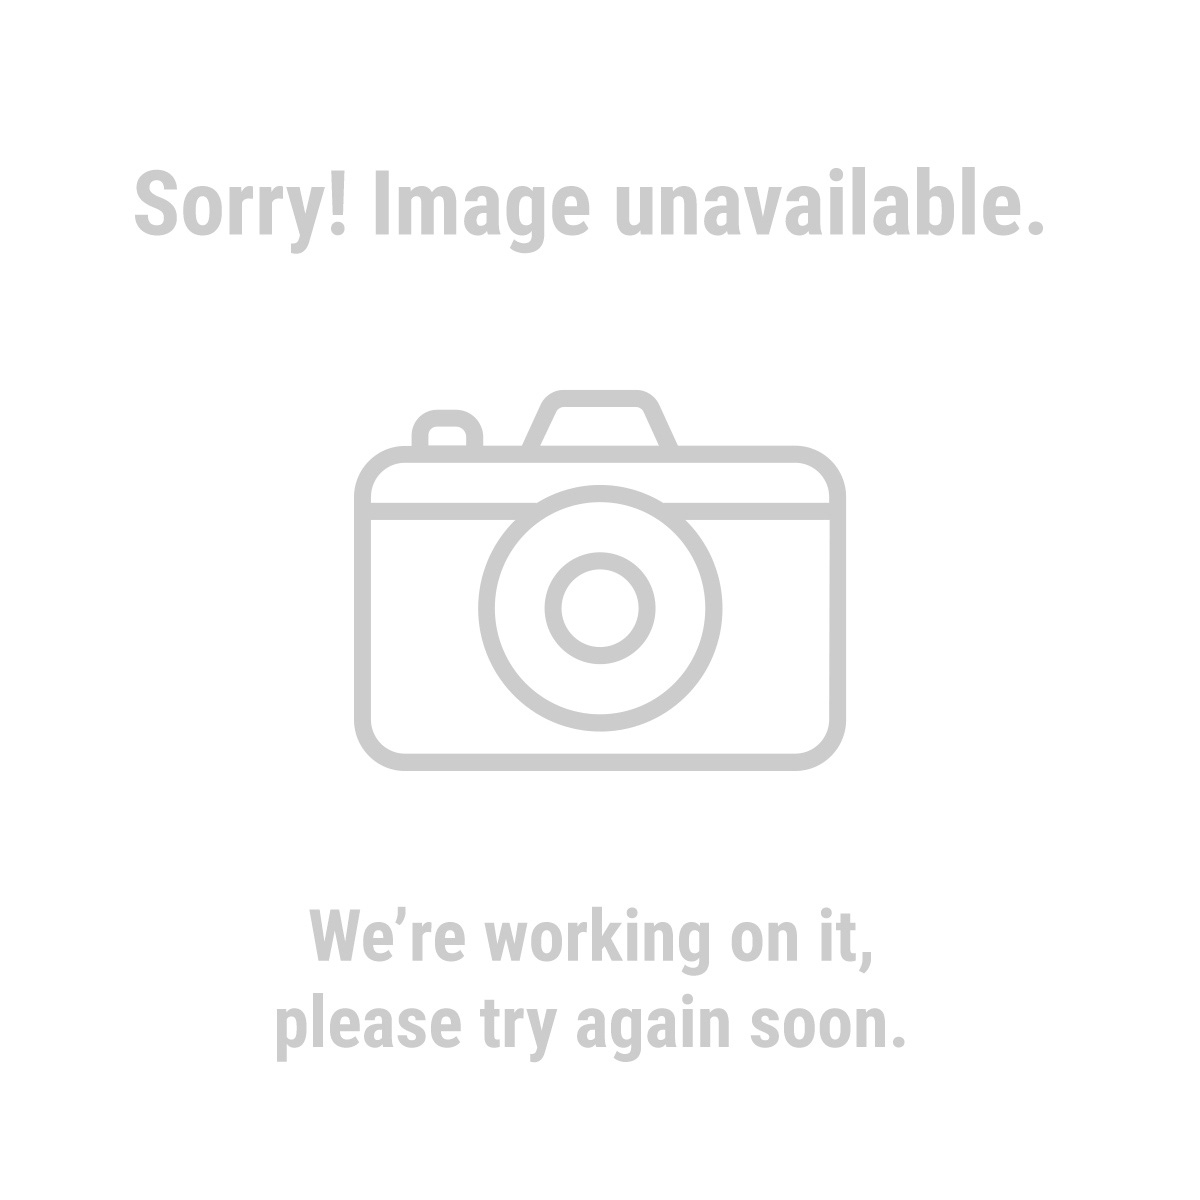 Haul-Master 95353 200 Lb. Capacity Mover's Dolly